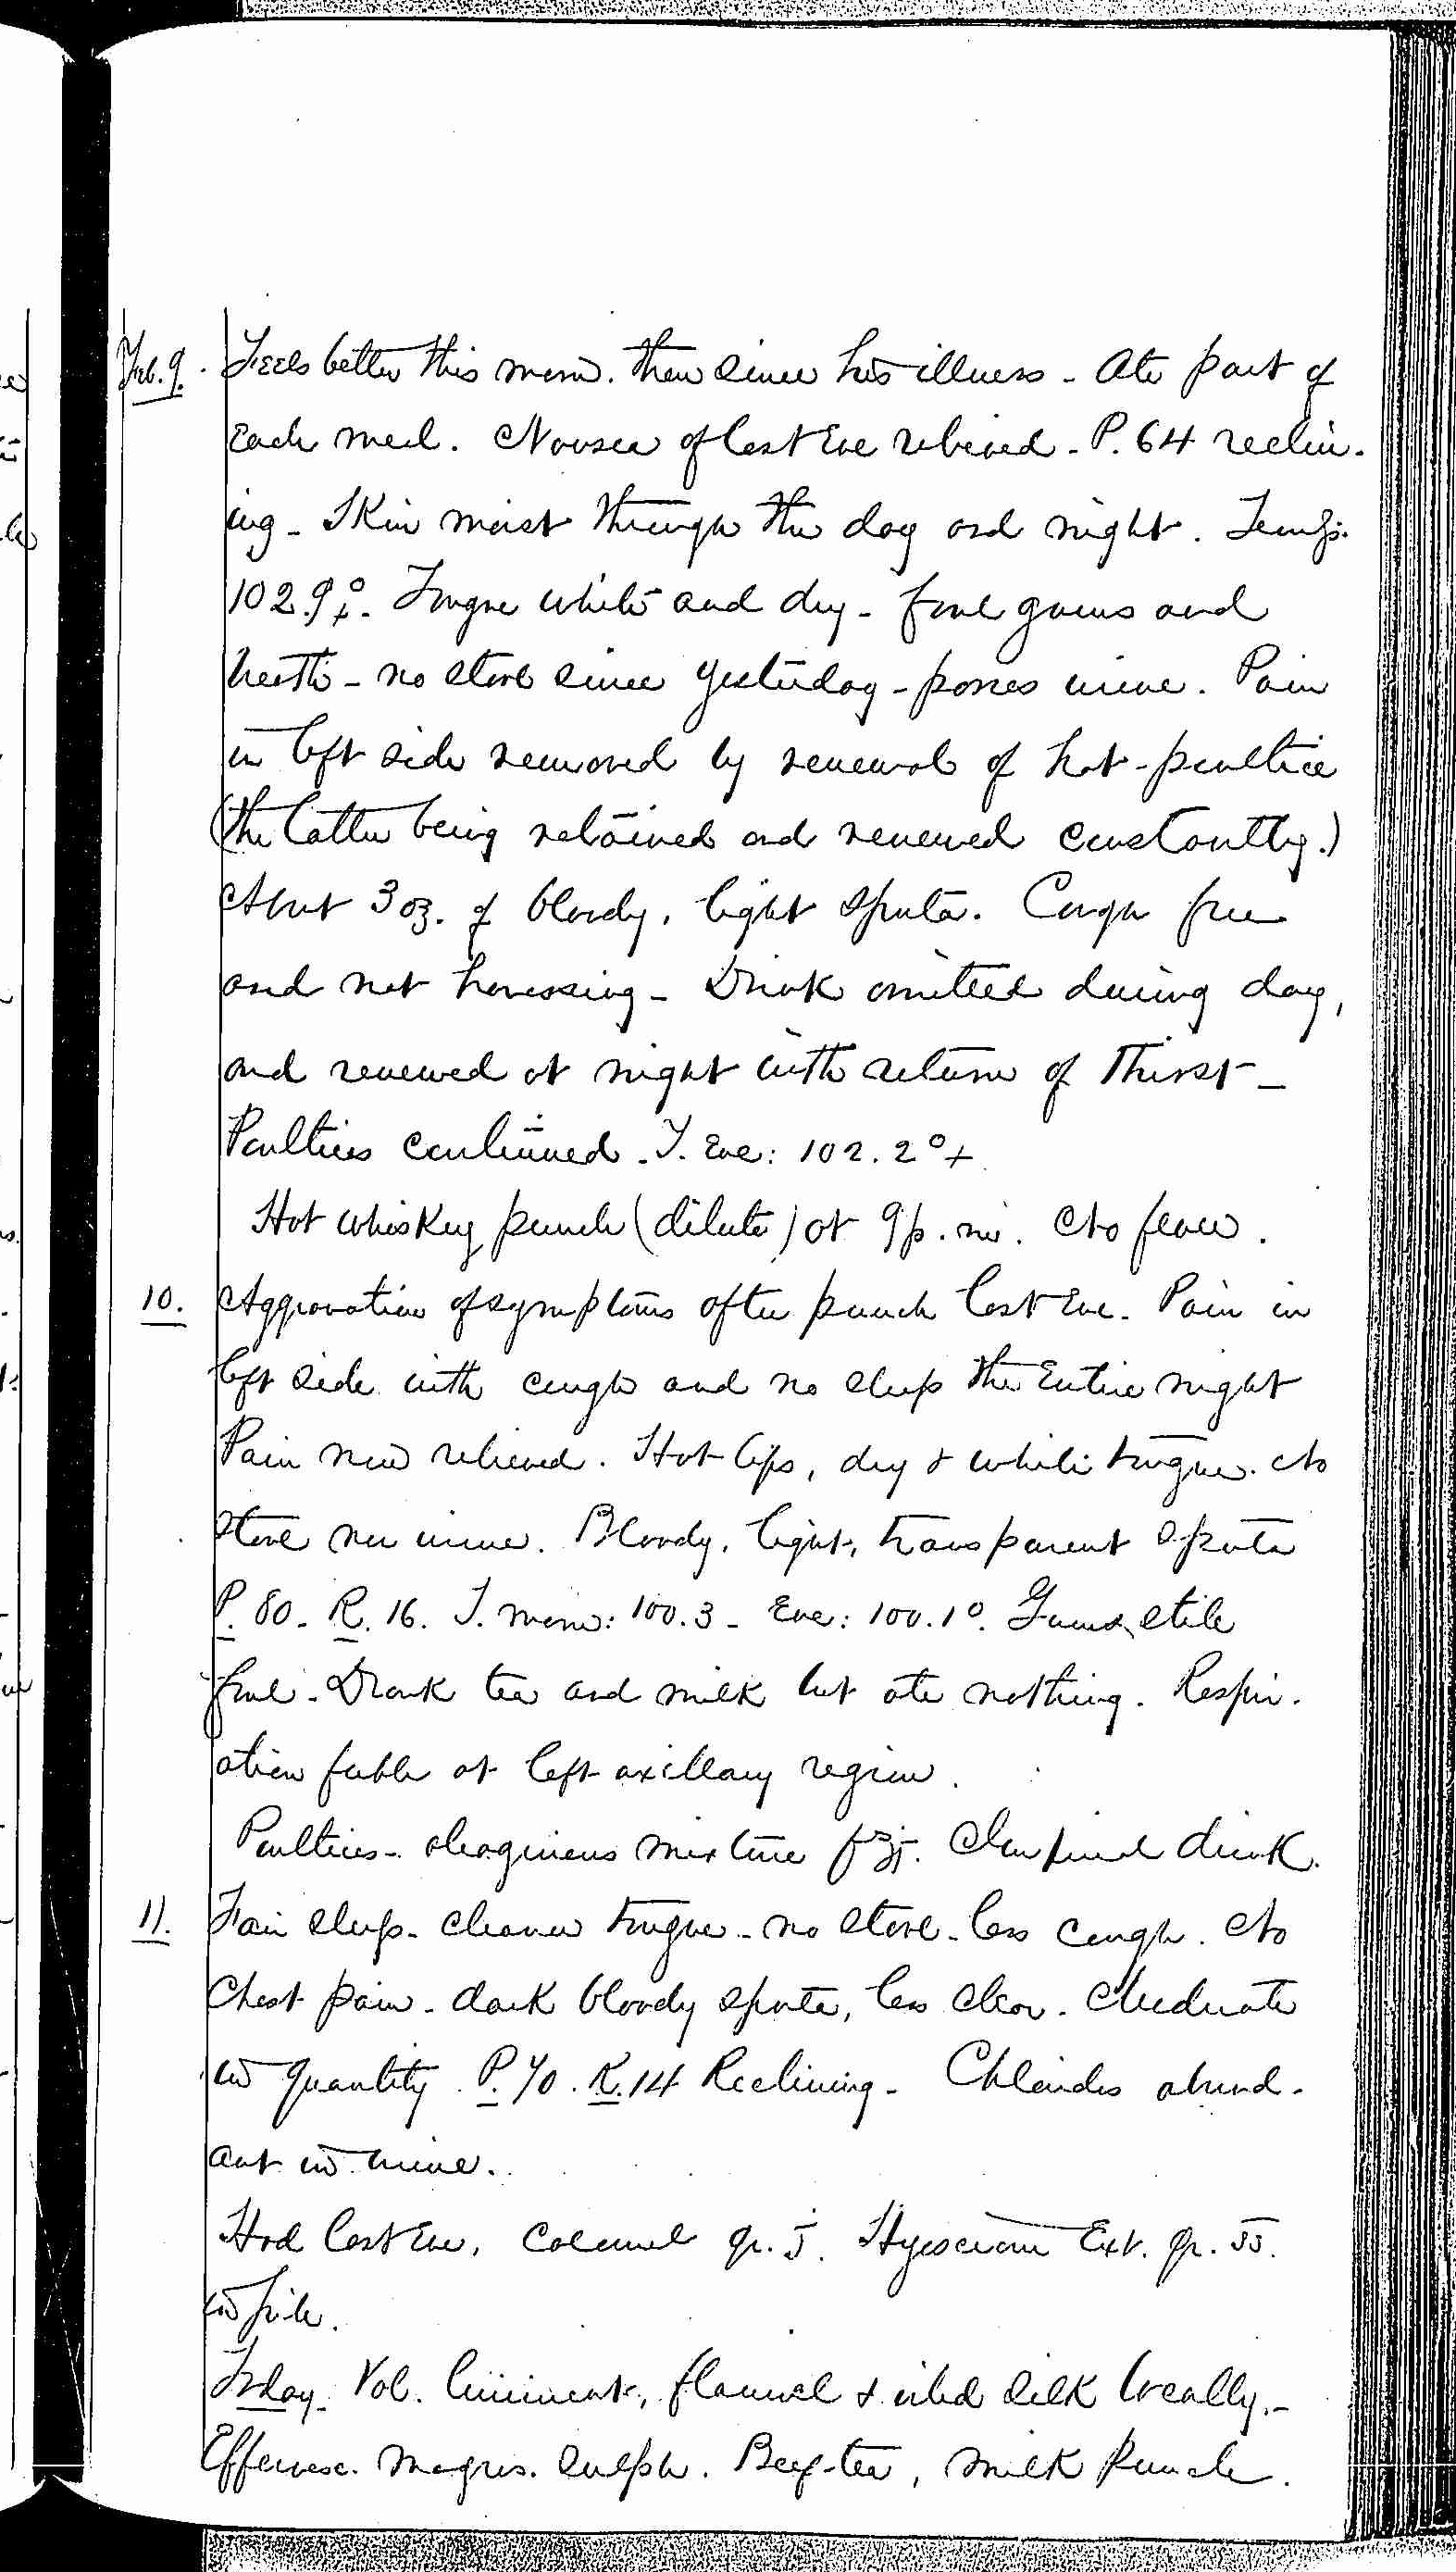 Entry for Theodore C. Waltenberg (page 3 of 4) in the log Hospital Tickets and Case Papers - Naval Hospital - Washington, D.C. - 1868-69